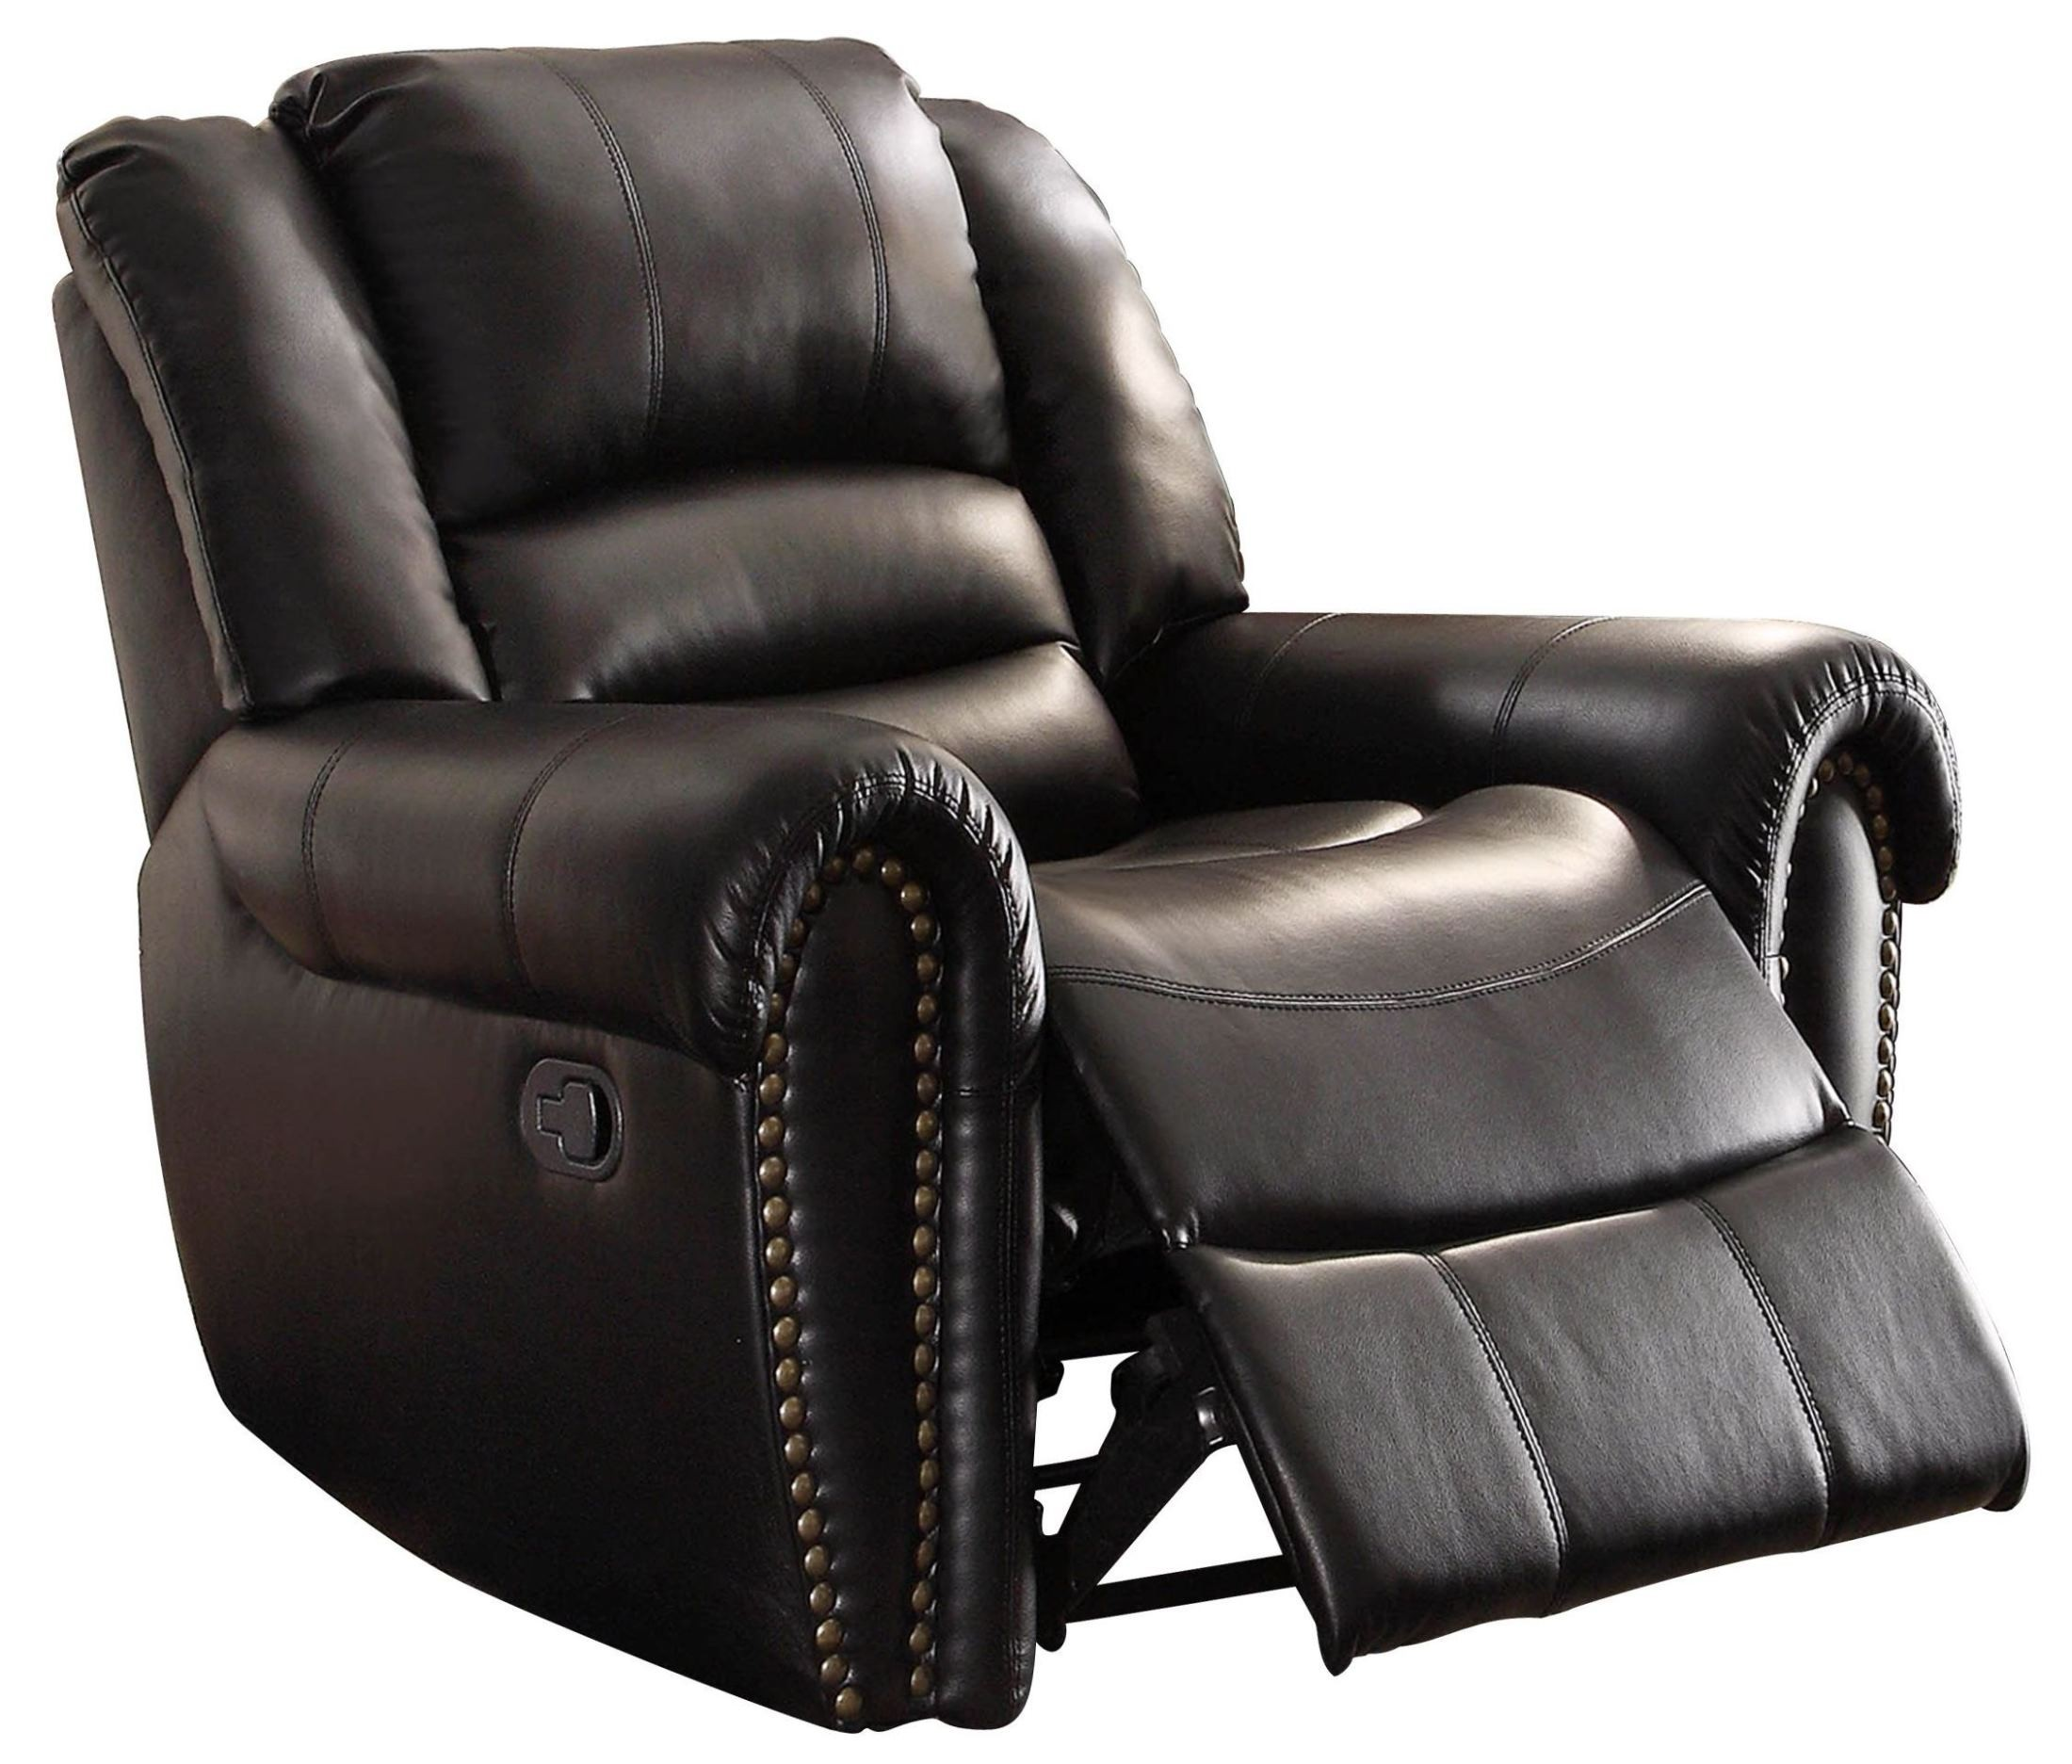 Center hill black glider reclining chair from homelegance 9668blk 1 coleman furniture